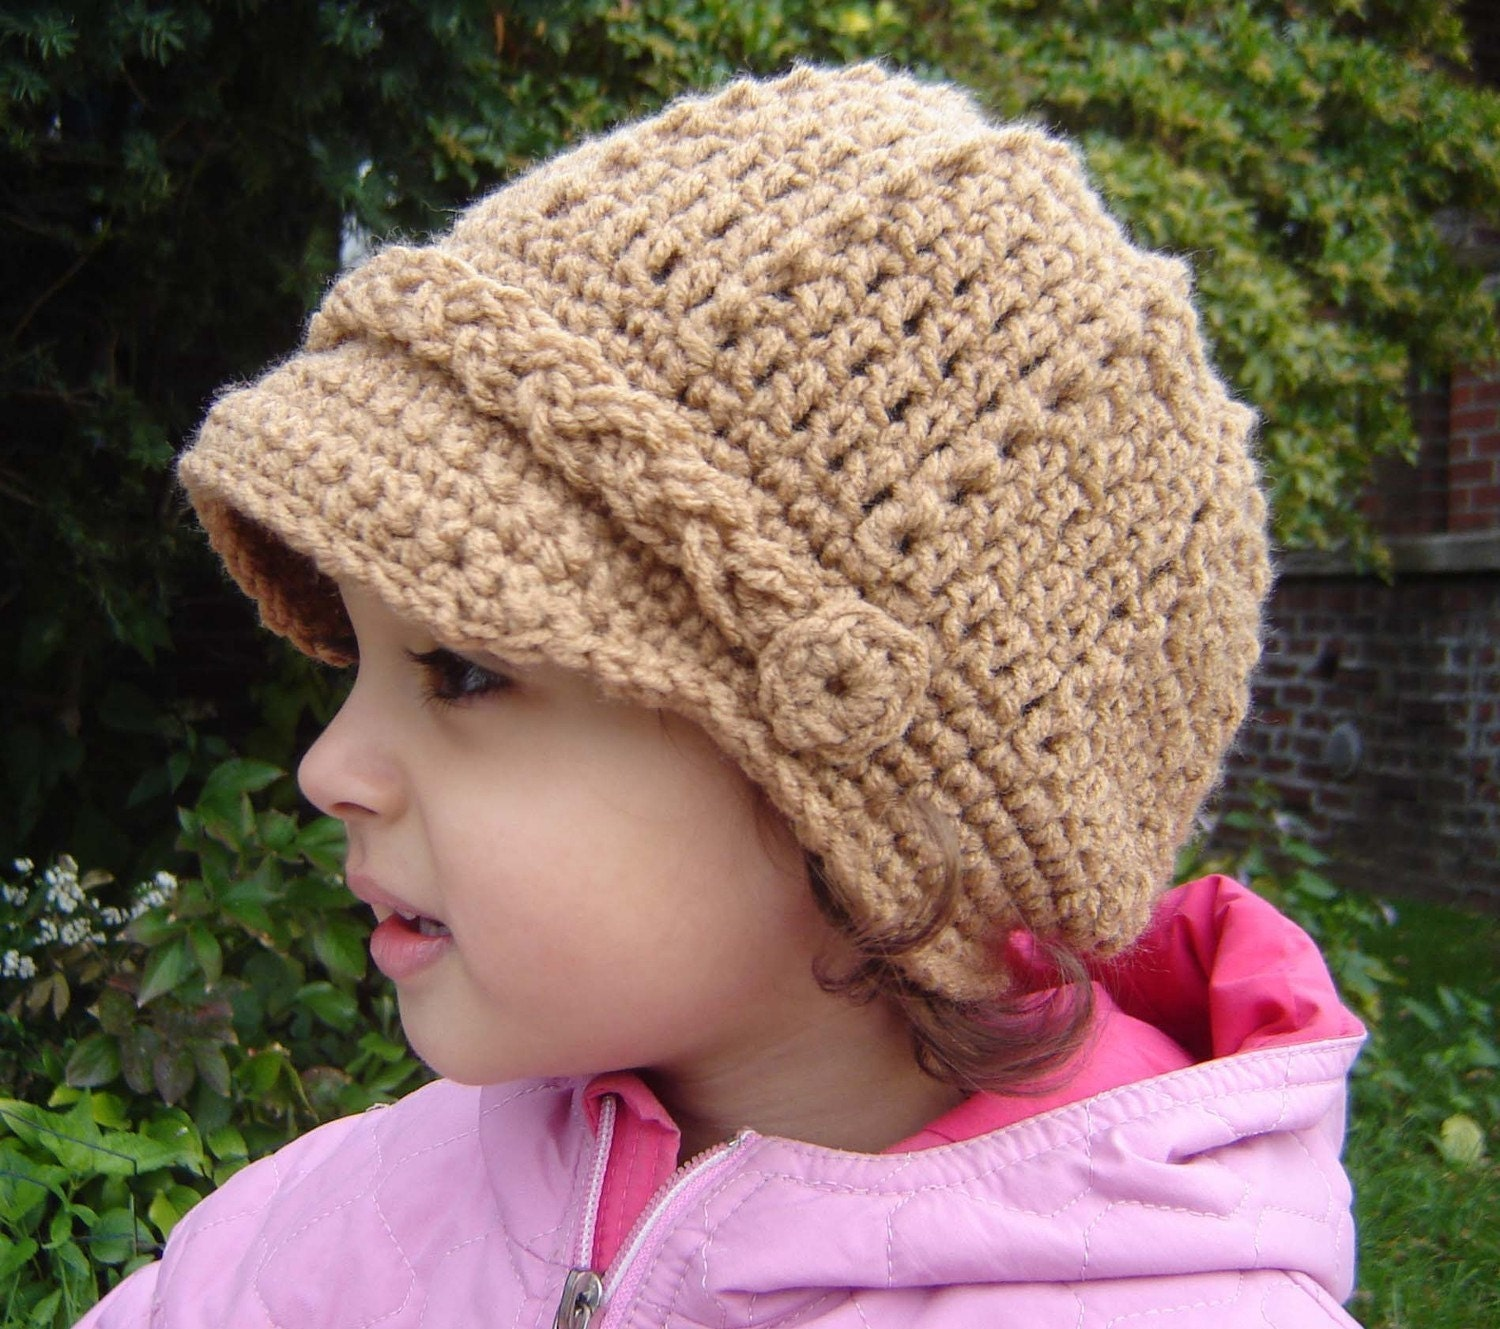 Free Crochet Pattern Toddler Newsboy Cap : PDF Instant Download Crochet Pattern No 056 Newsboy Cap All